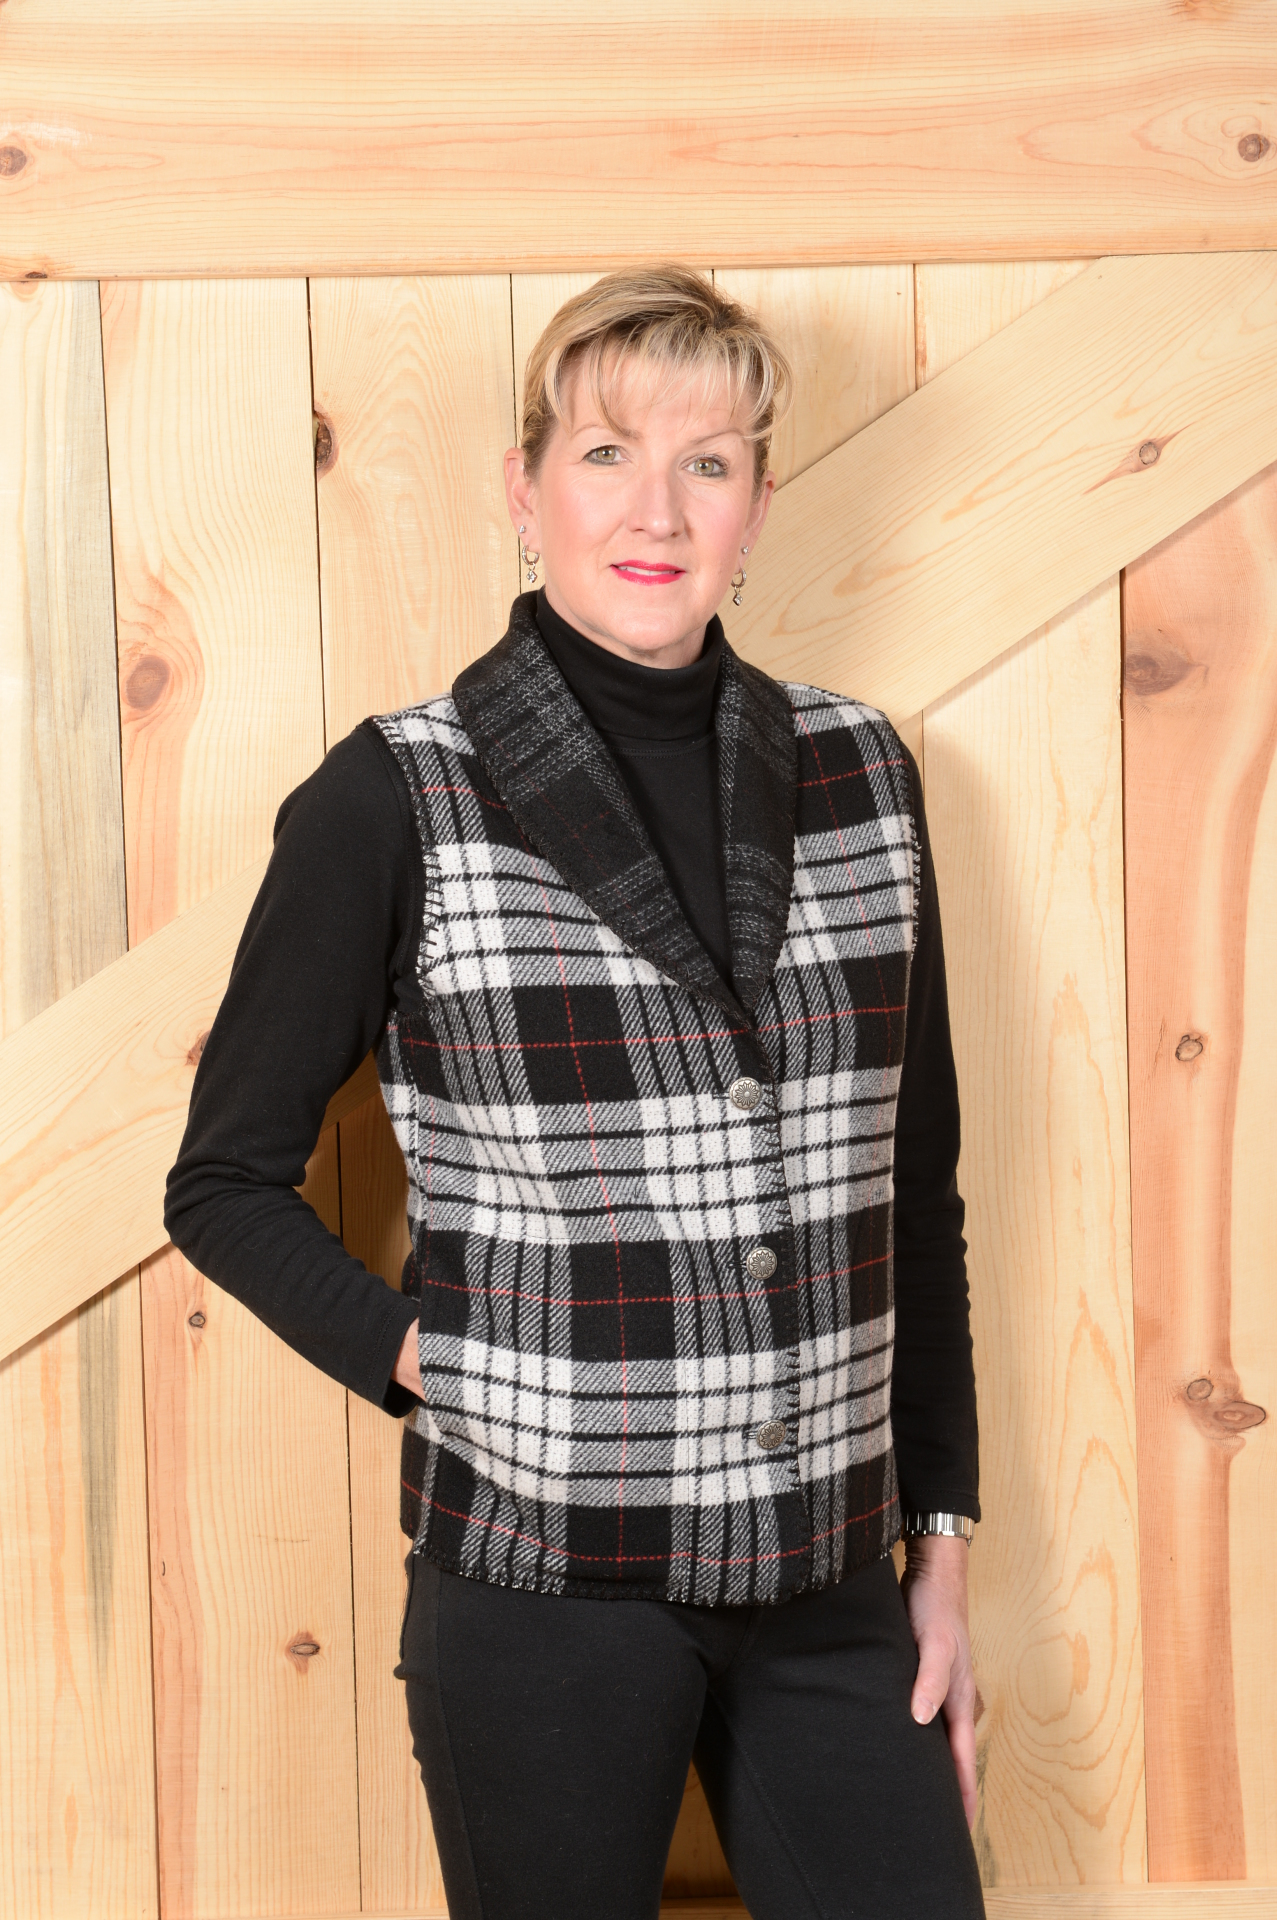 #130TPW - WHITE TARTAN PLAID SHAWL COLLAR VEST - WAS $99.95 -- SALE $49.98 -- ALL SIZES AVAILABLE!